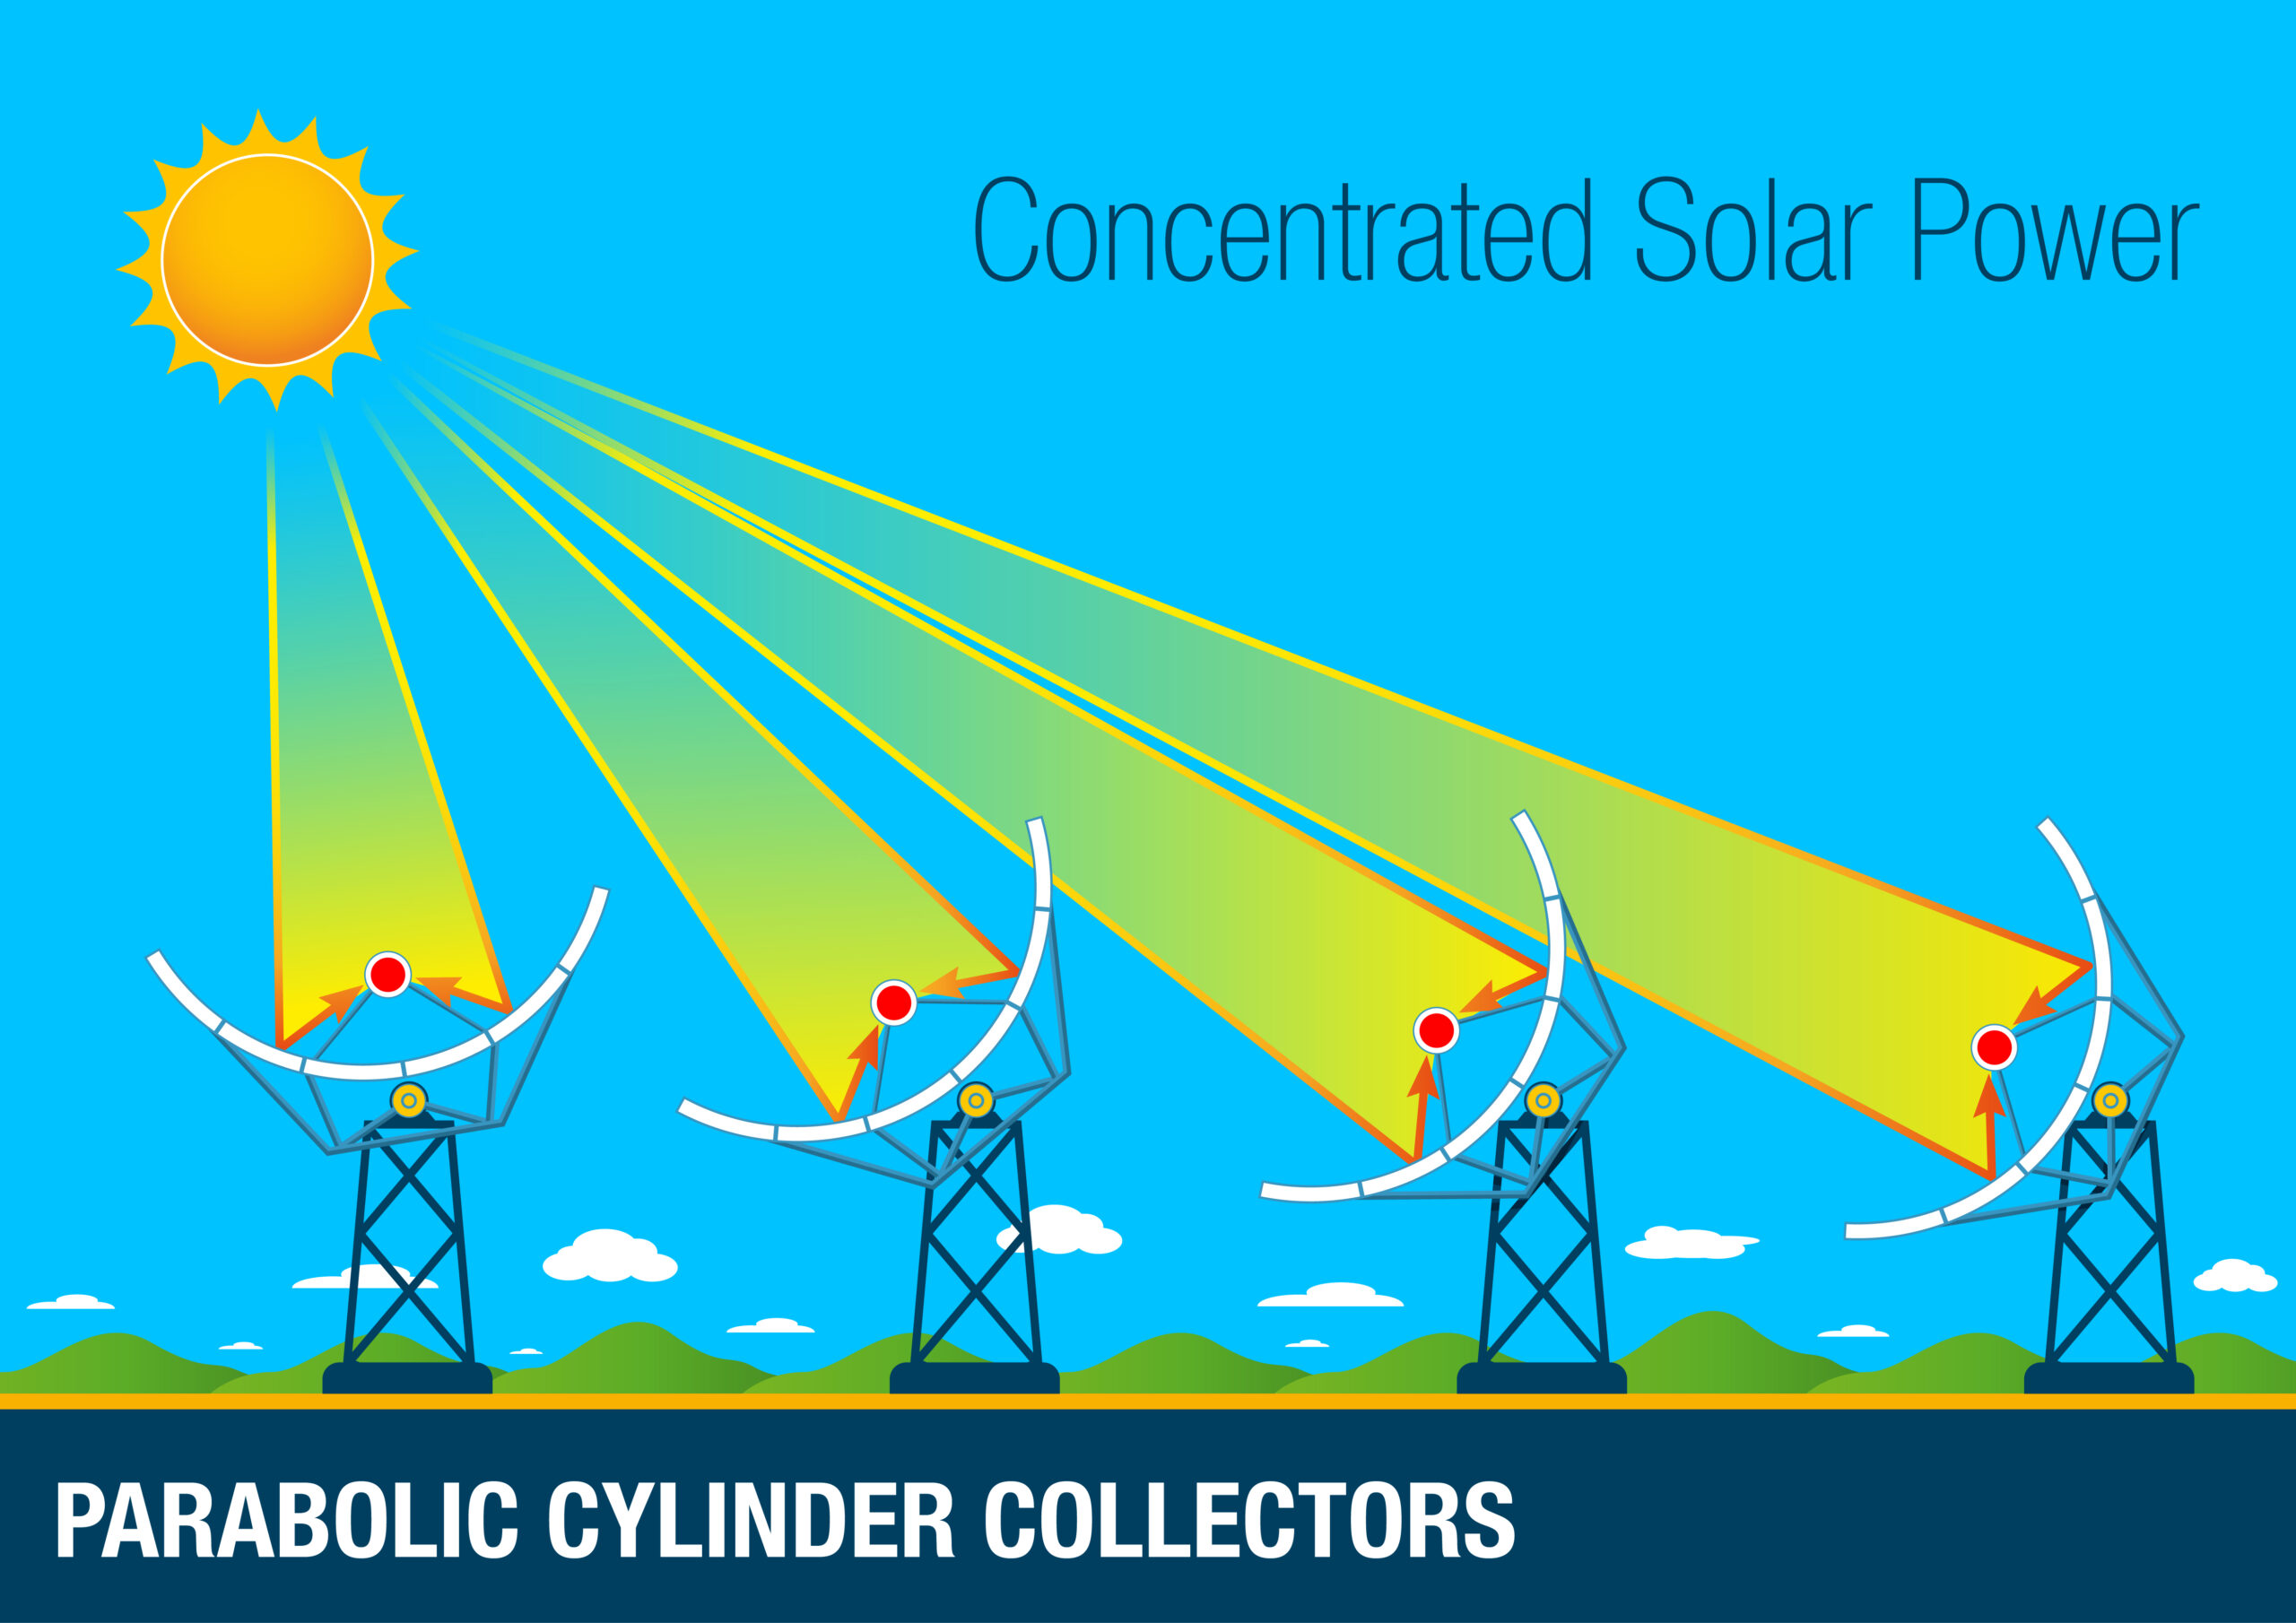 An infographic depicting parabolic cylinders generating concentrated solar power.